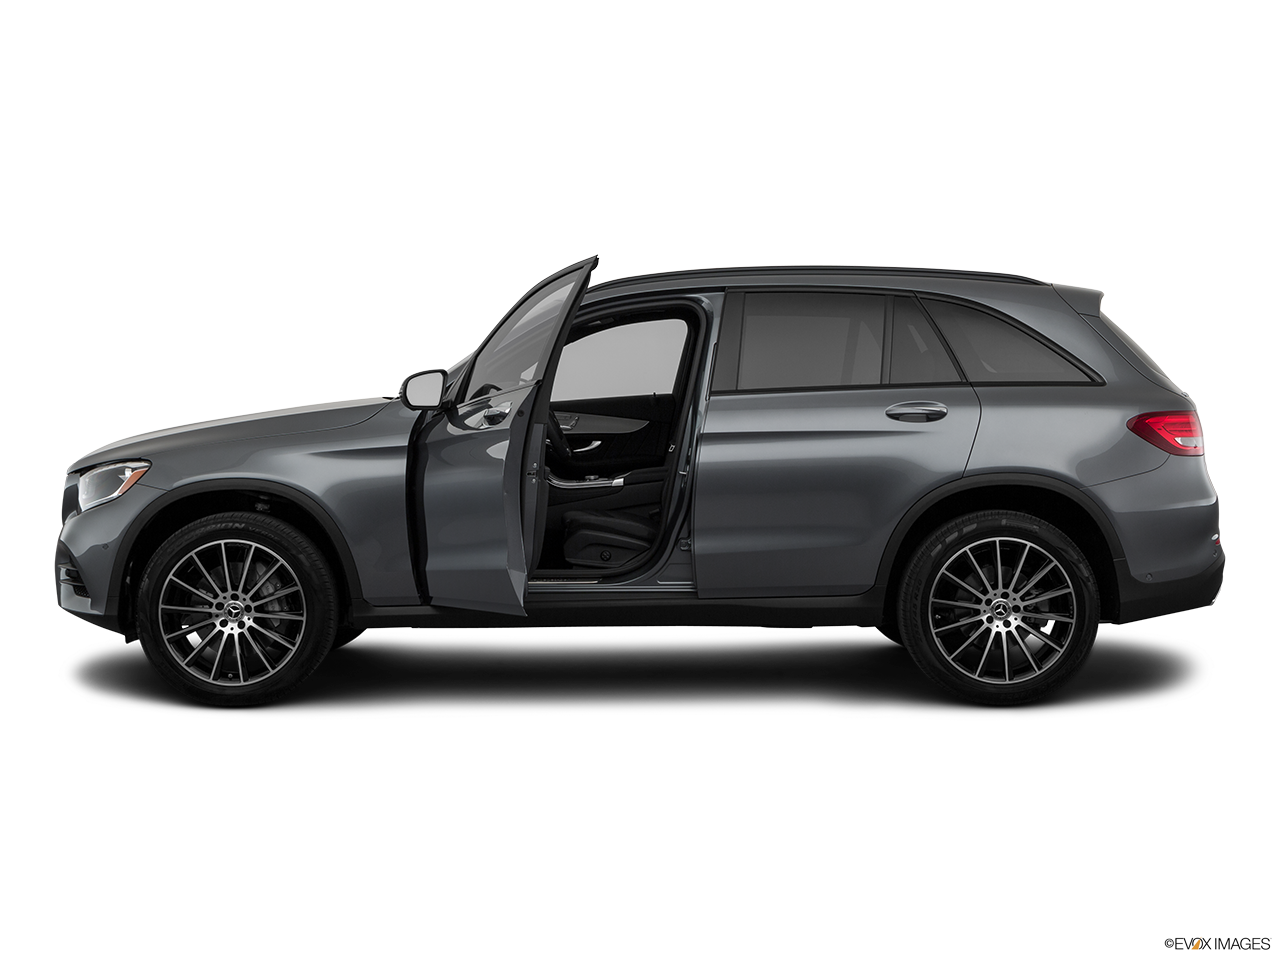 Side view of the Mercedes-Benz GLC350e